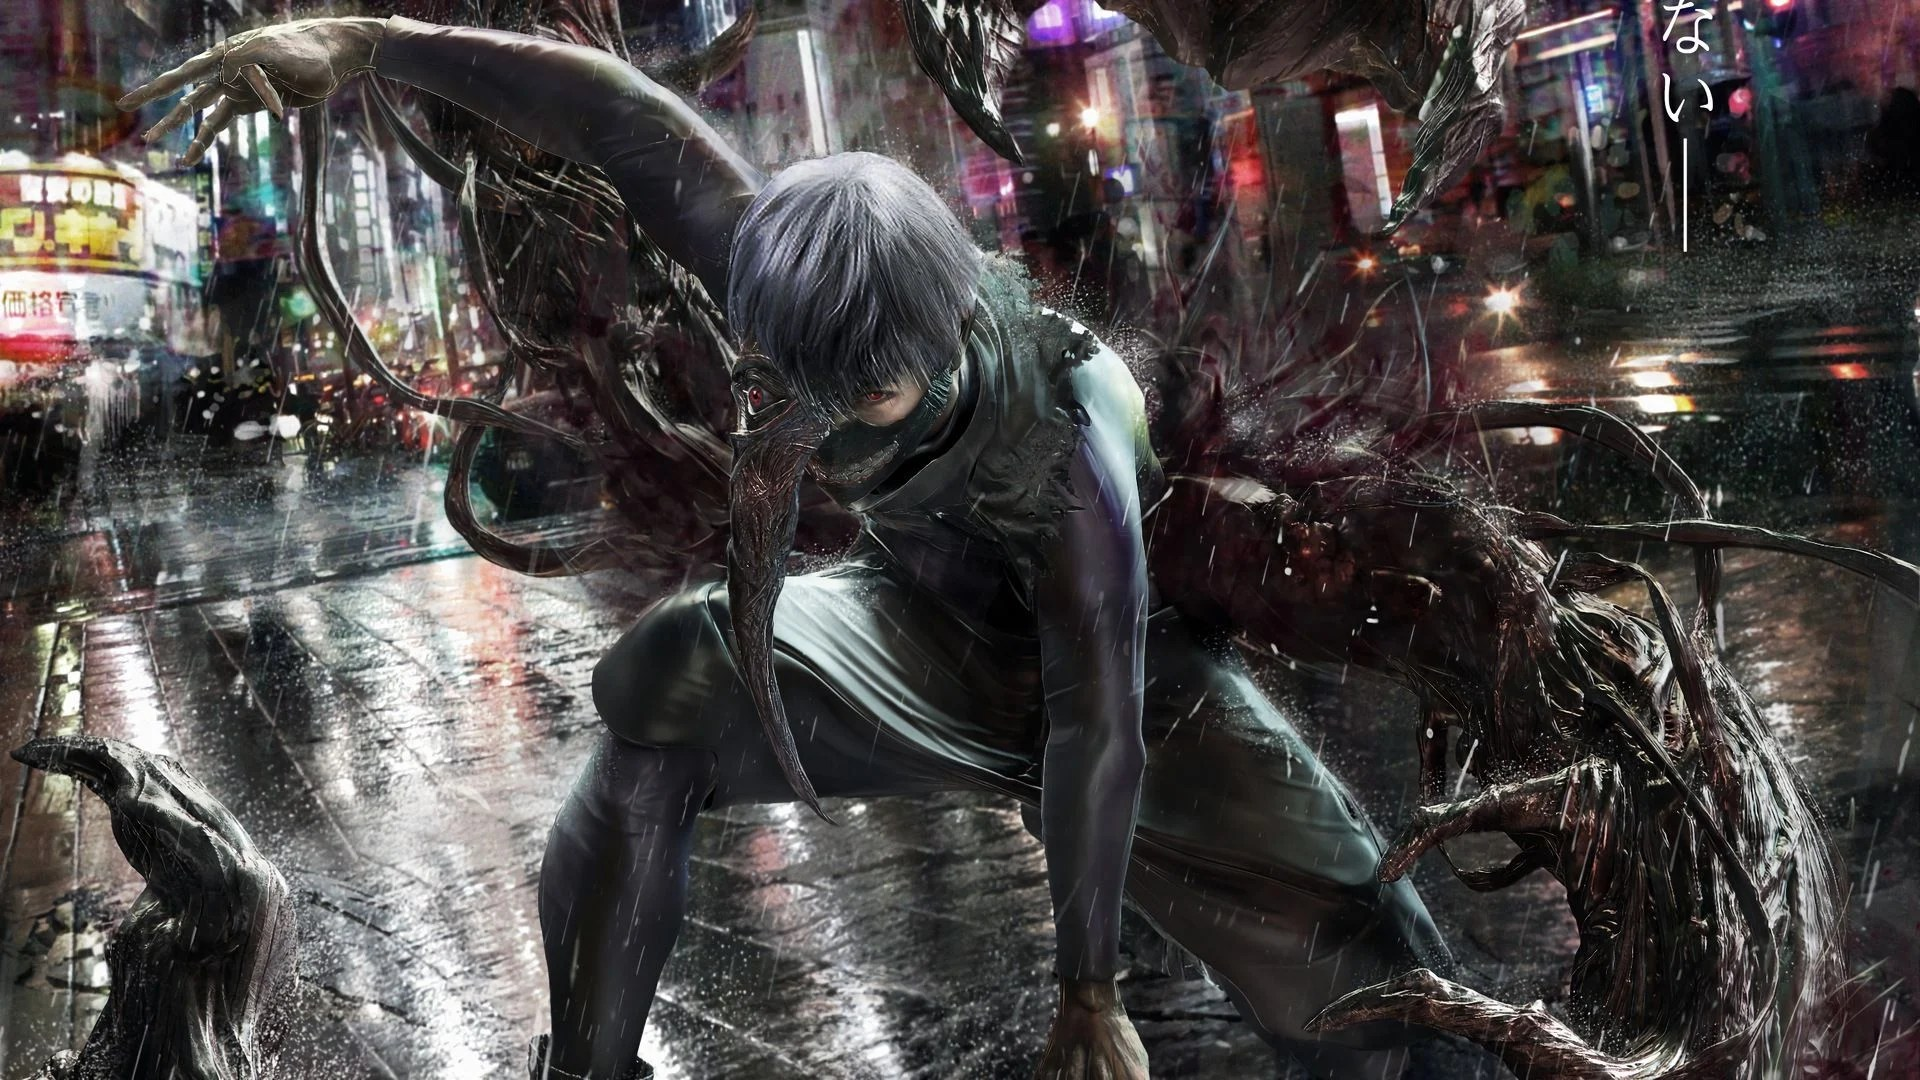 100 tokyo ghoul live wallpapers for wallpaper engine windows pc more live wallpapers: 31+ Live Wallpaper Anime Tokyo Ghoul - Anime Top Wallpaper